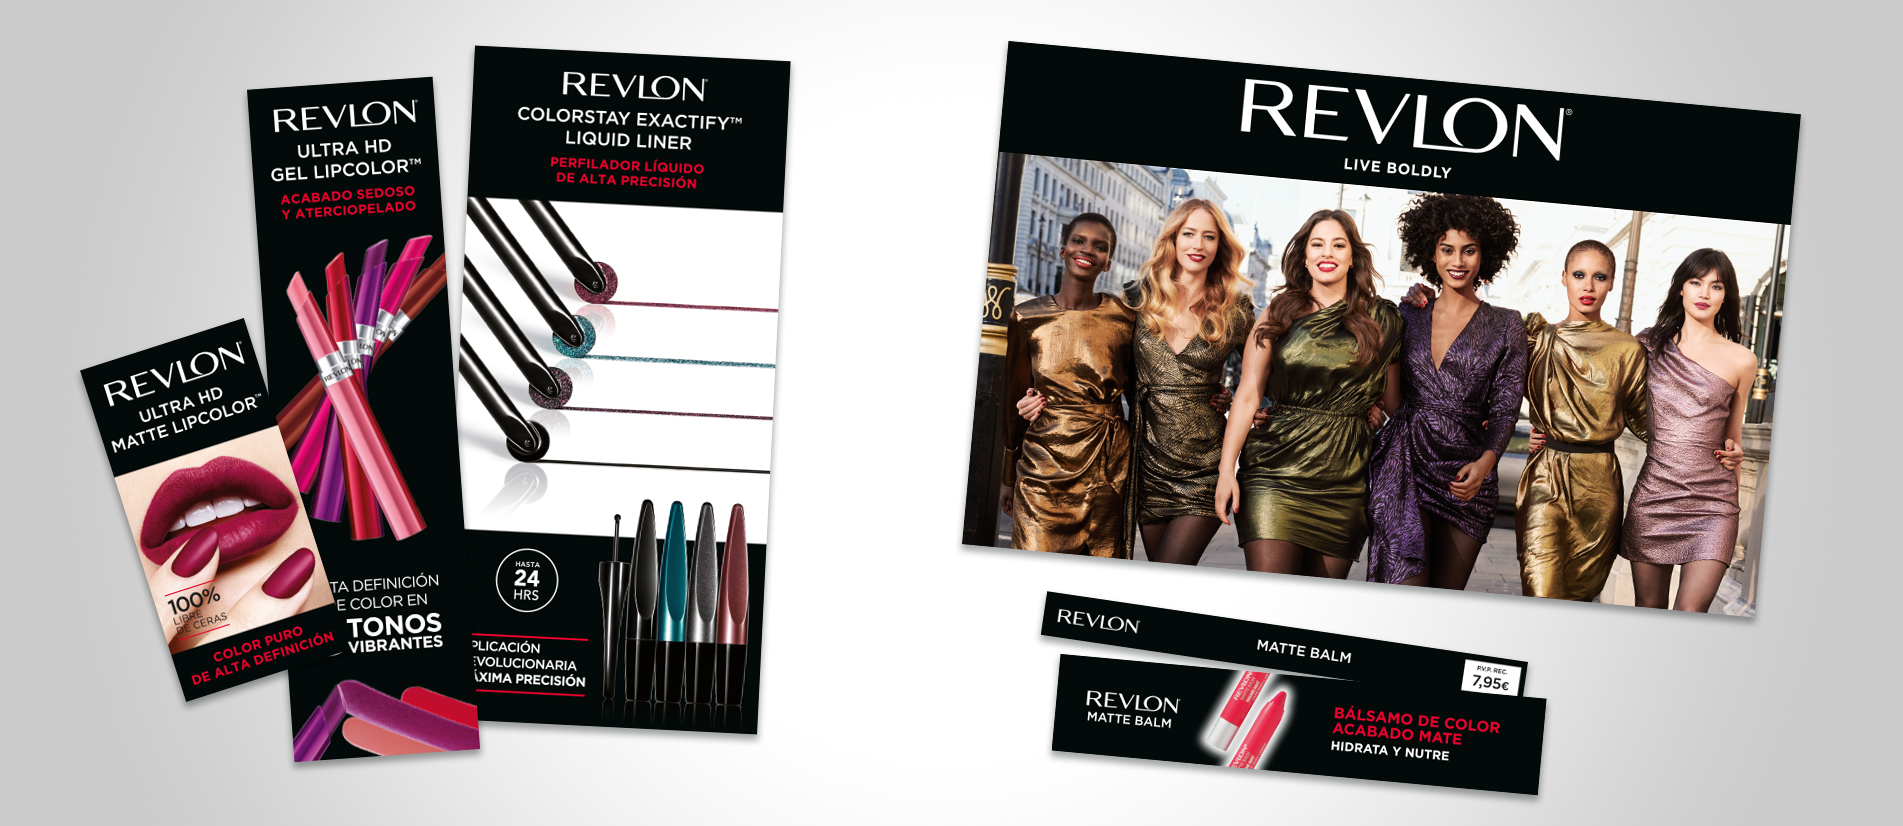 9122-INDICA-Newsletter-8-muebles-REVLON-guide-lines